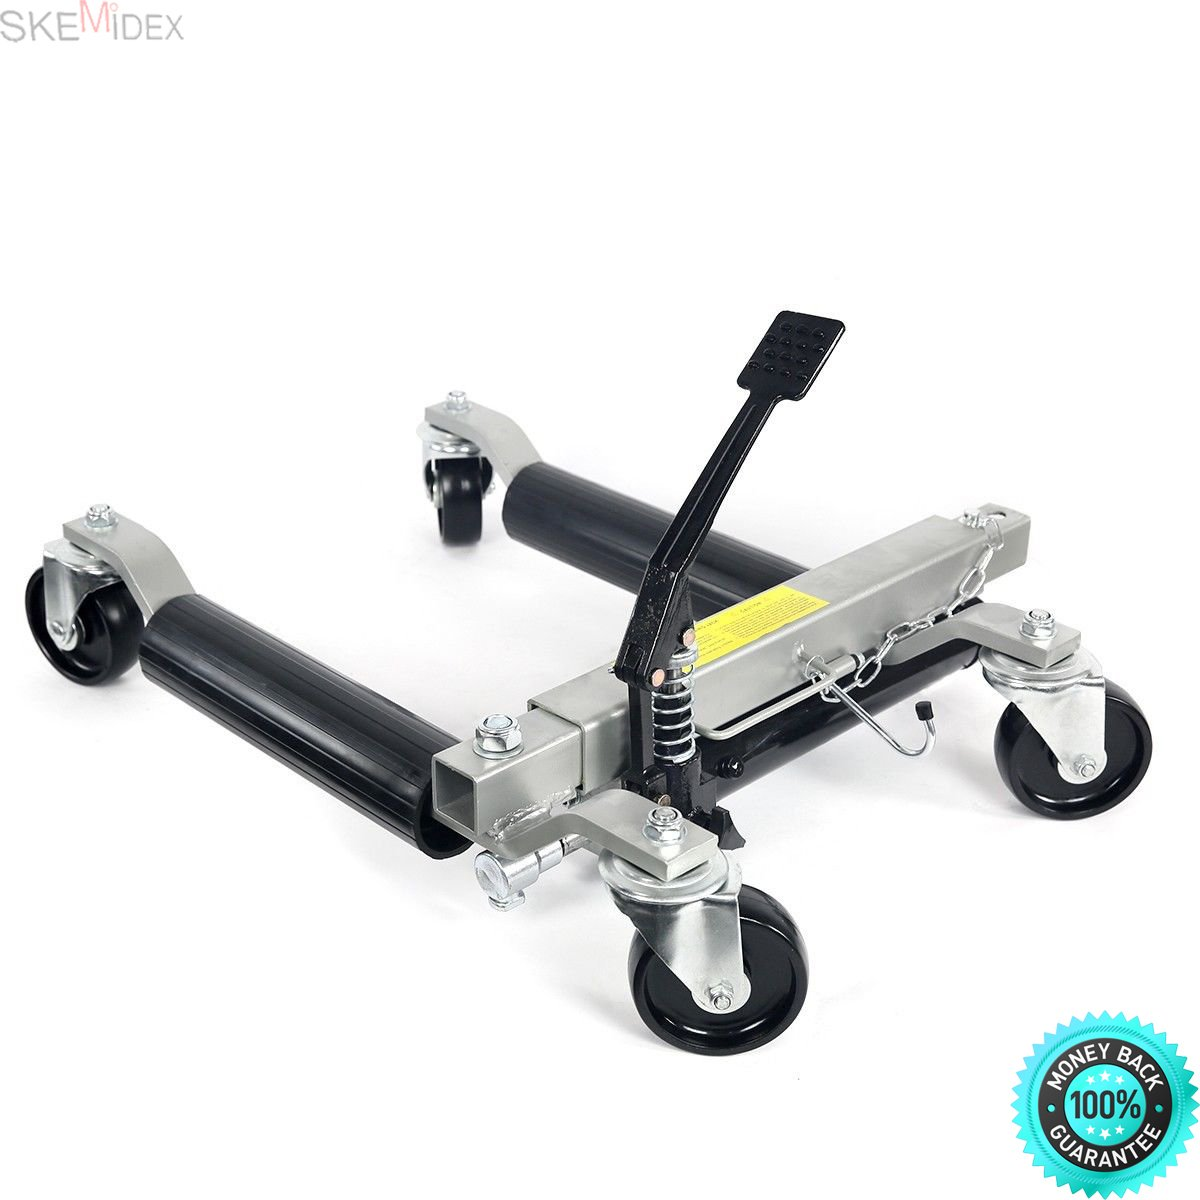 SKEMIDEX---2pc 1500lb HYDRAULIC Positioning Car Wheel Dolly Jack Lift hoists Moving Vehicle And moving dollies moving dolly lowes moving dolly rental walmart dolly hand truck costco hand truck